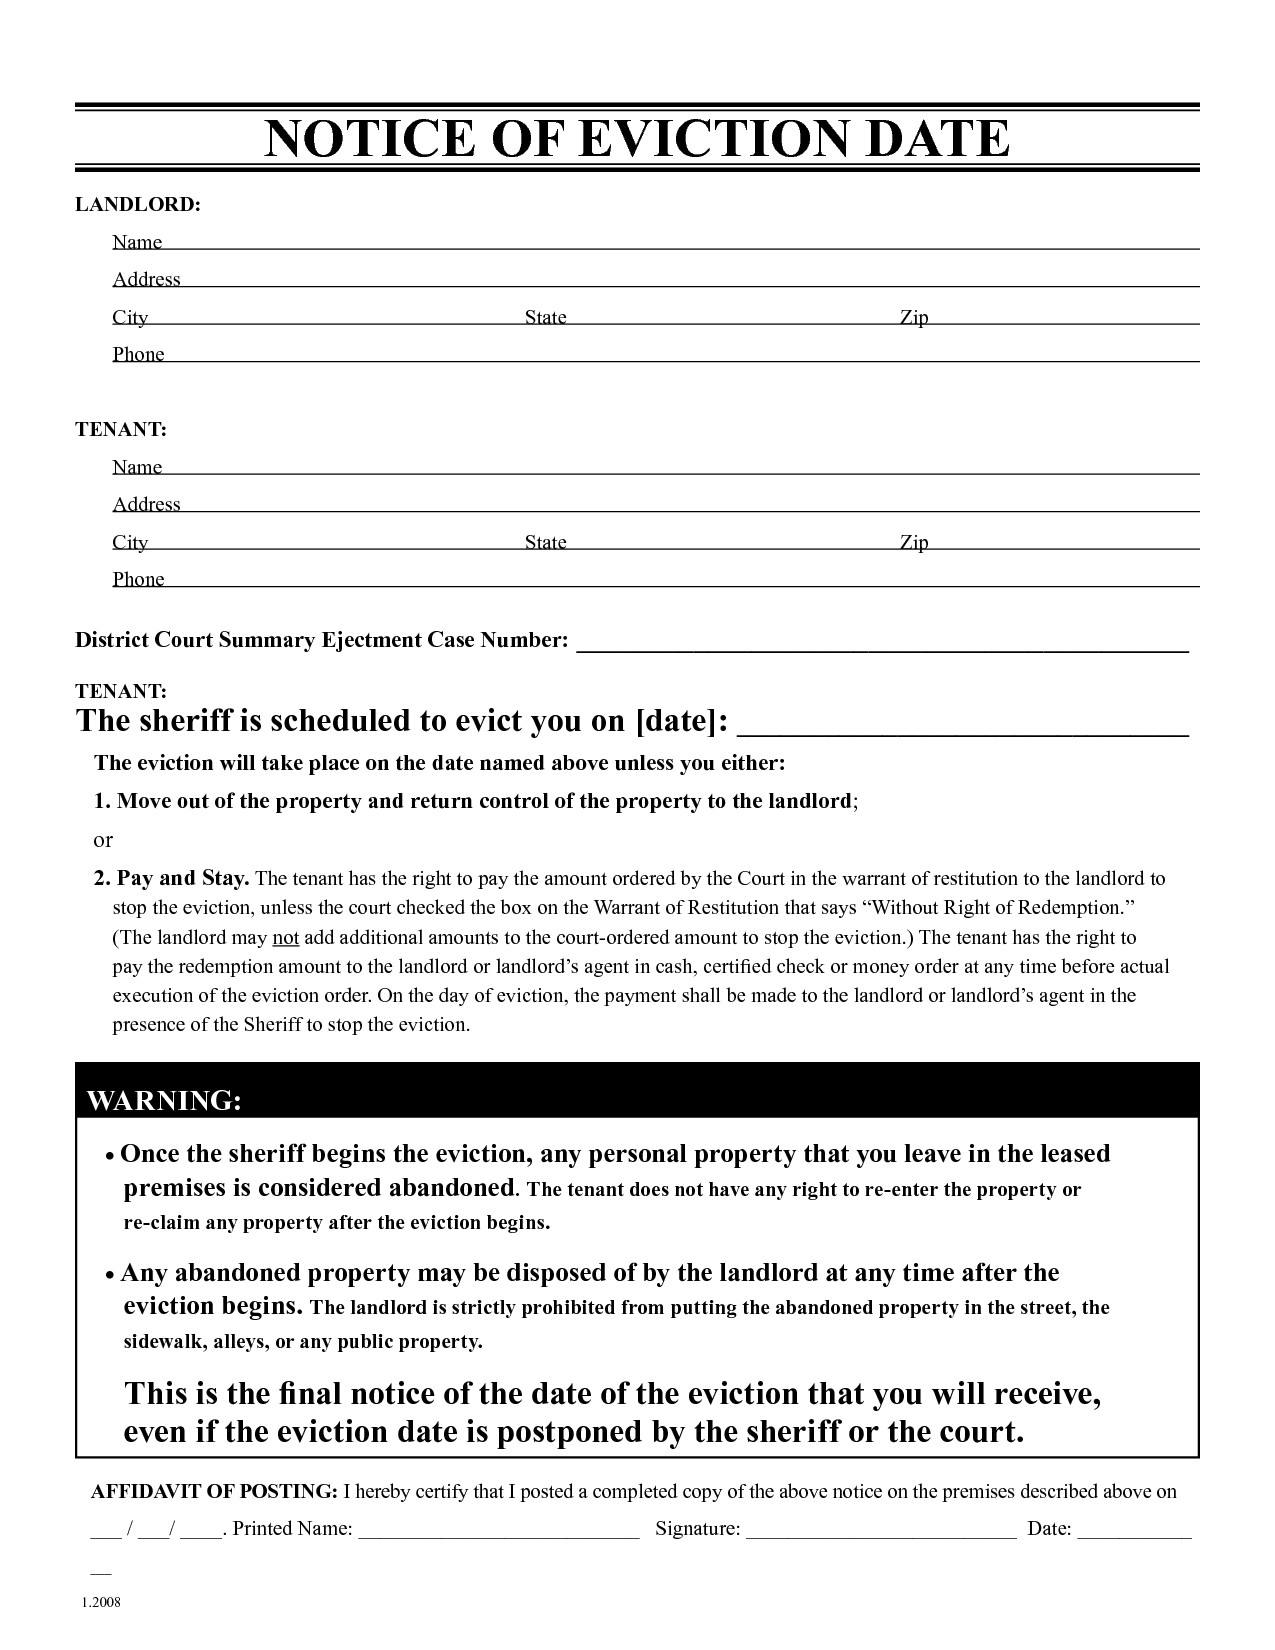 Eviction Letter Template Word - Free Eviction Notice form Beautiful How to Write An Eviction Letter